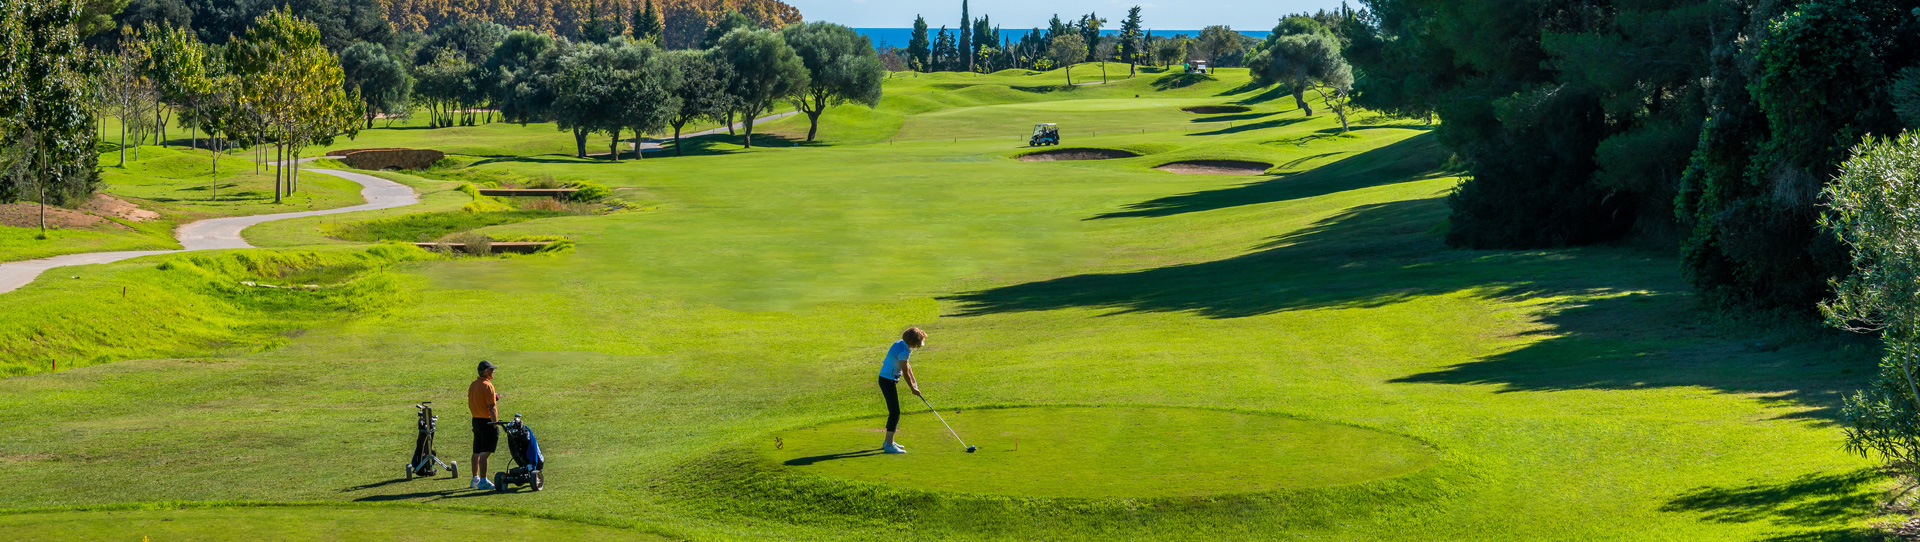 Pula Golf Course - Photo 1